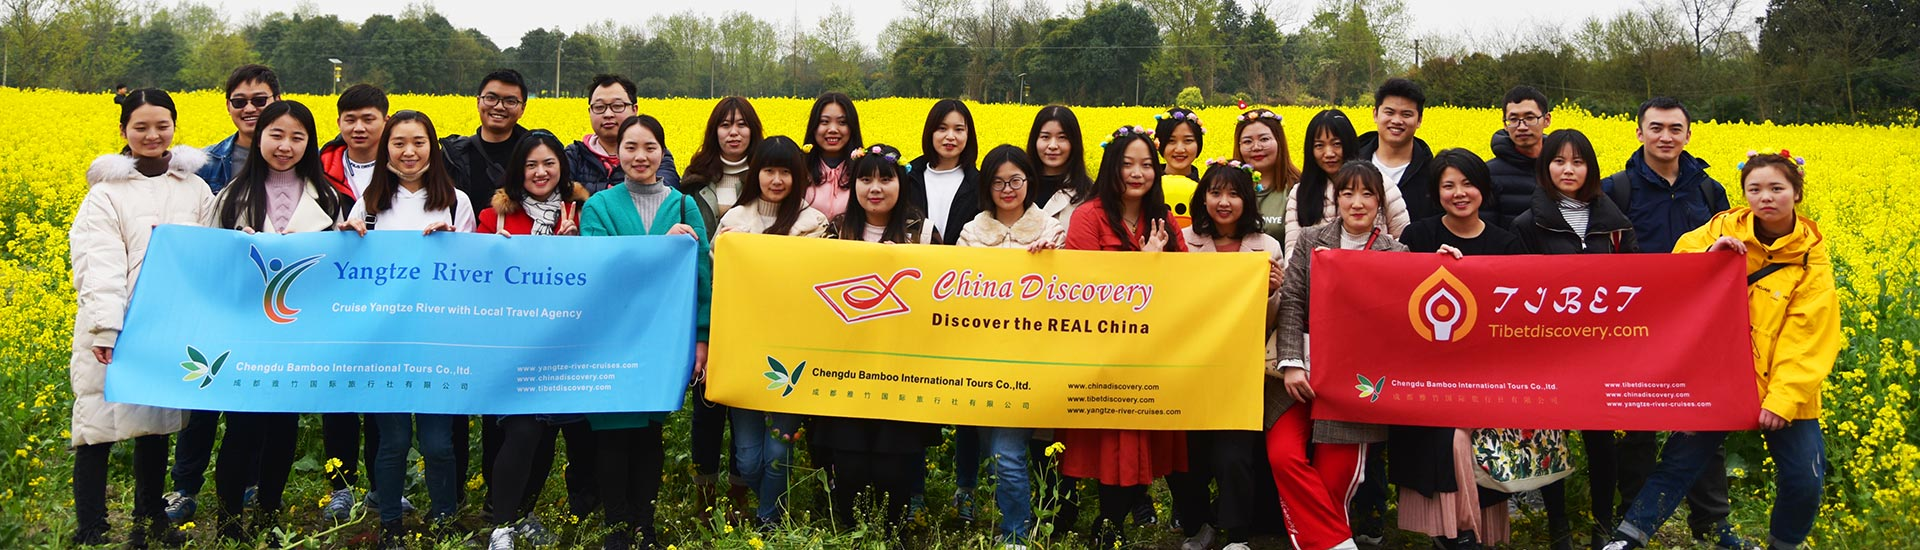 Chengdu Bamboo International Tours